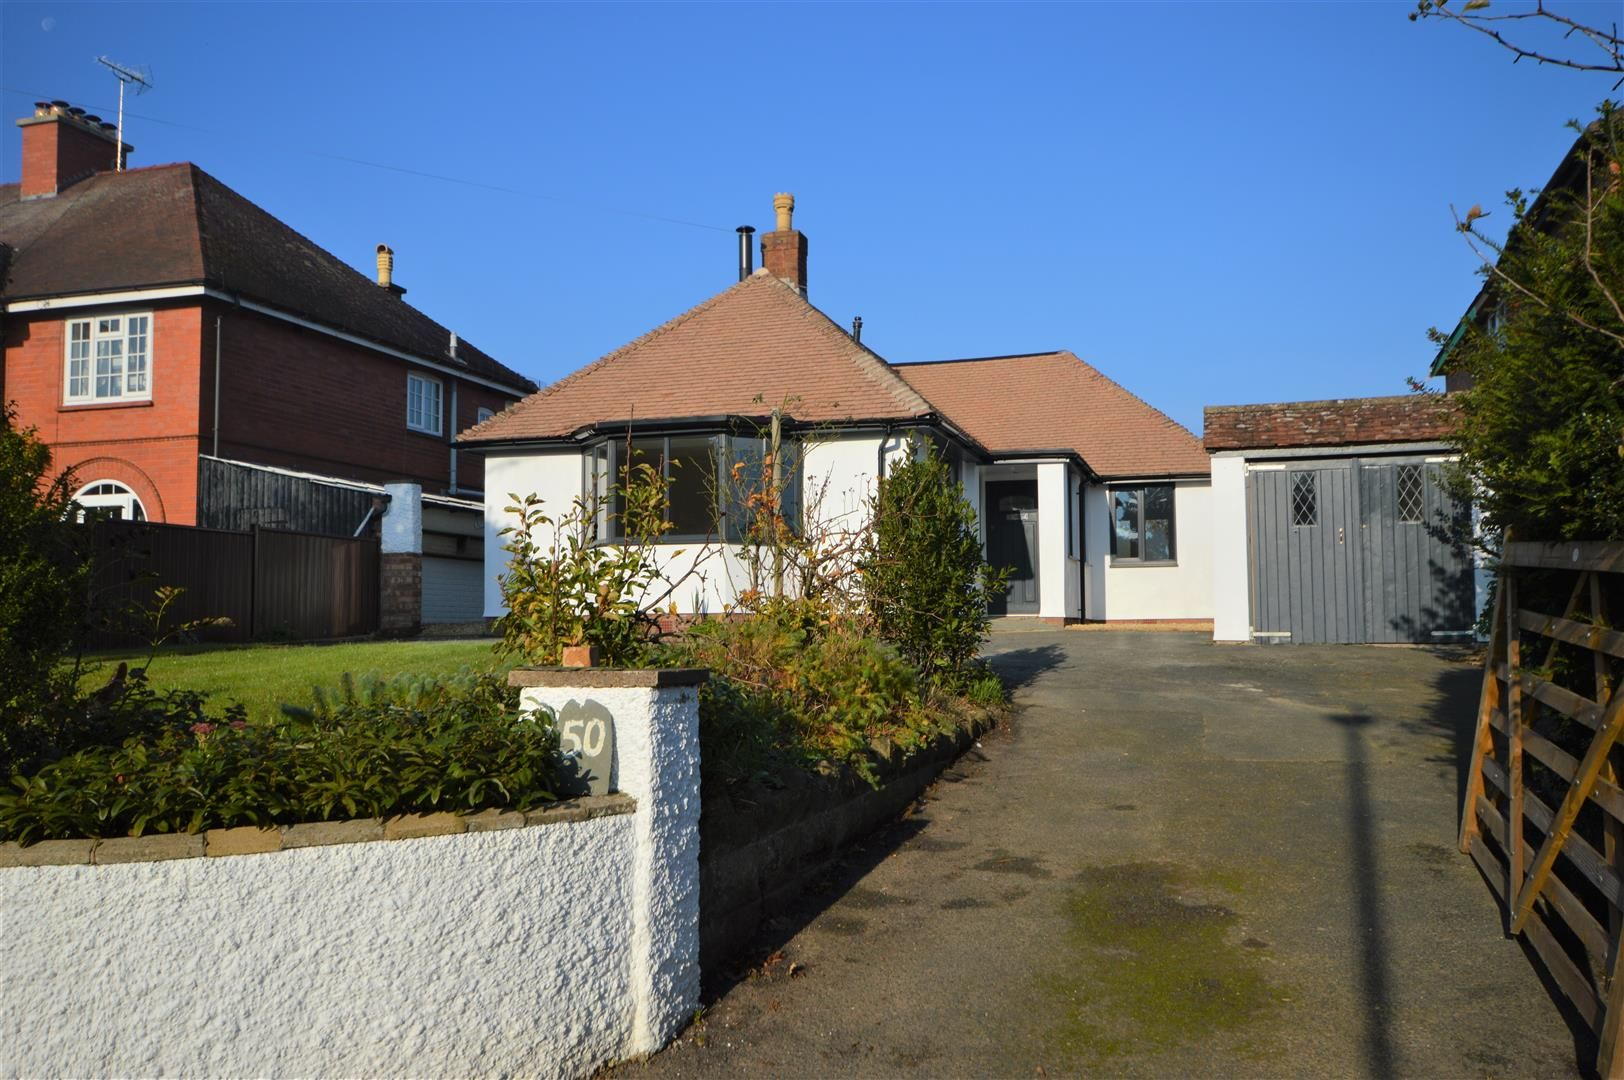 3 bed detached bungalow for sale, HR6